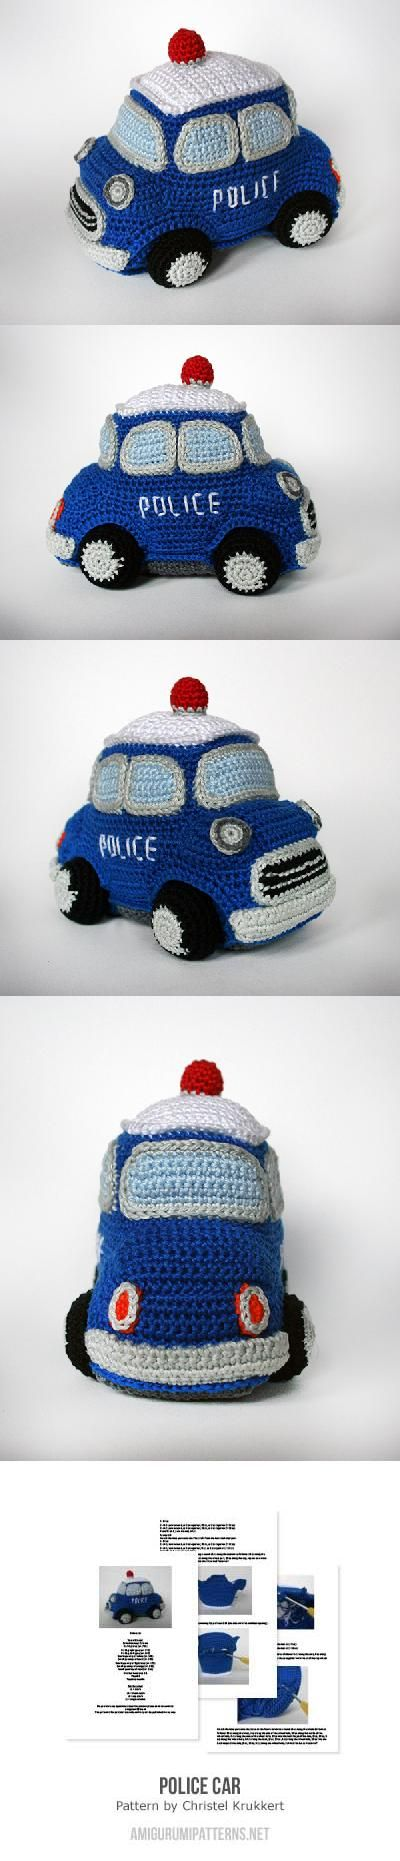 Amigurumi Patterns Cars : 1923 best images about TOYS!! on Pinterest